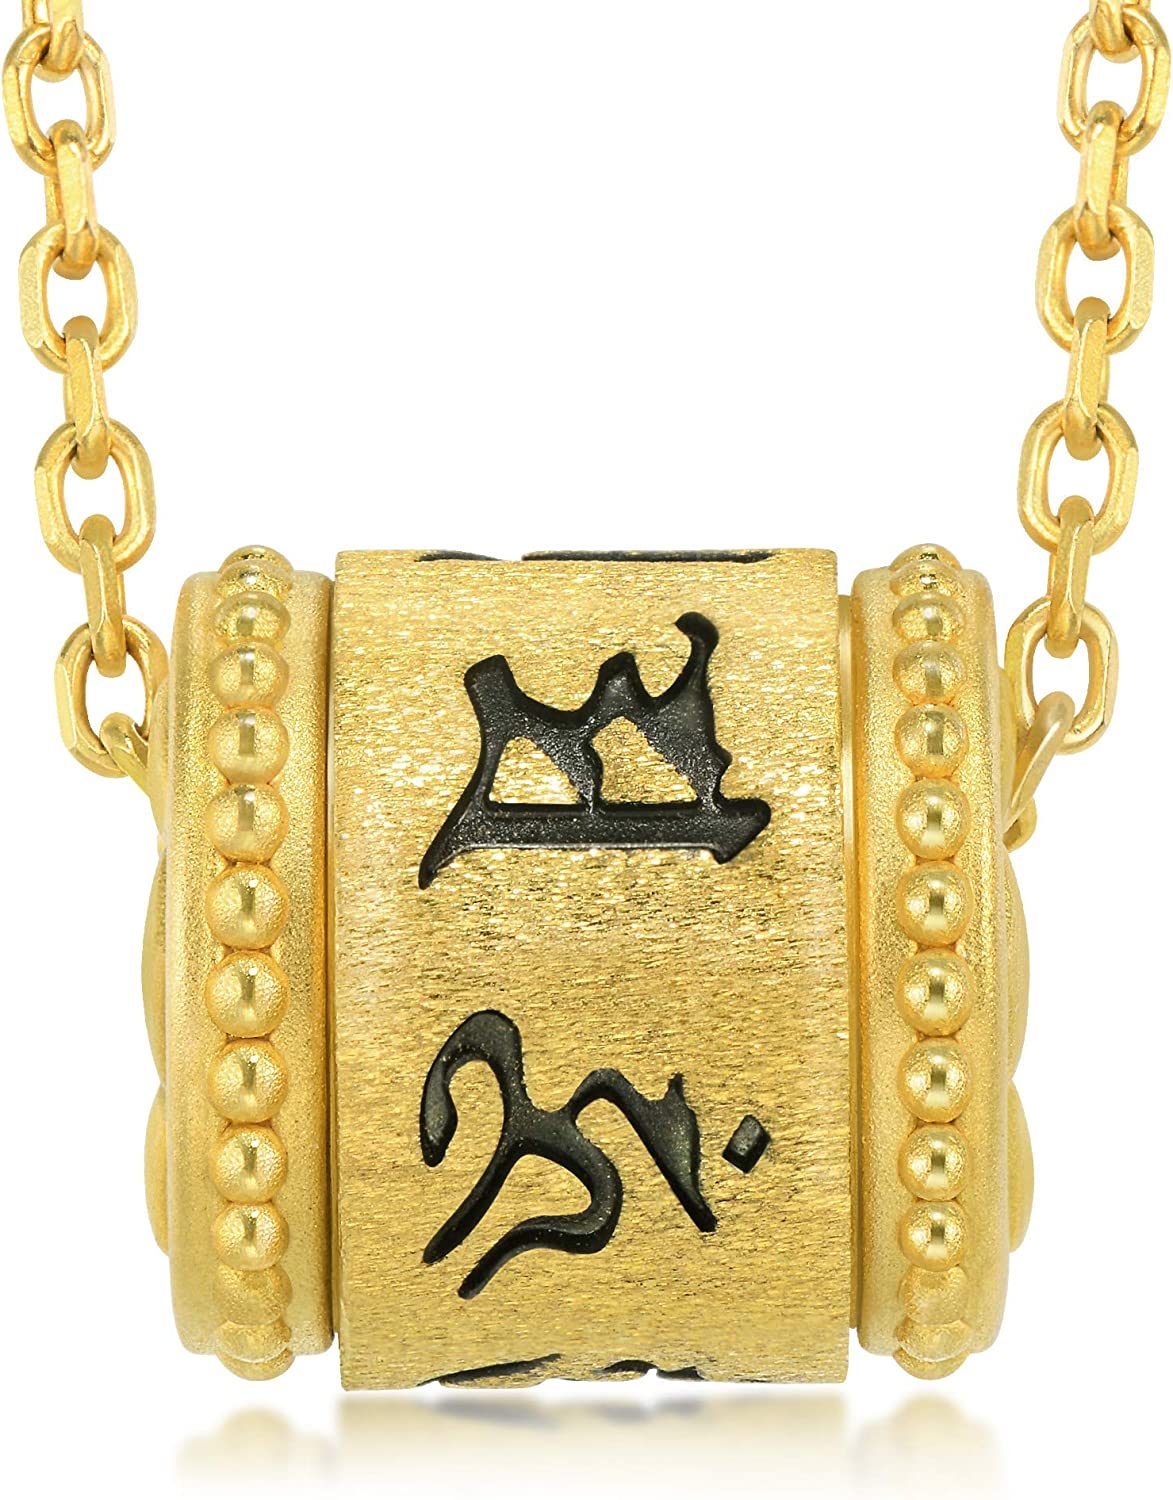 Chow Sang Sang 999 24K Solid Gold 'Om Mani Padme Hum' Blessing Pendant for Men & Women 91037P [Not Include the Necklace]